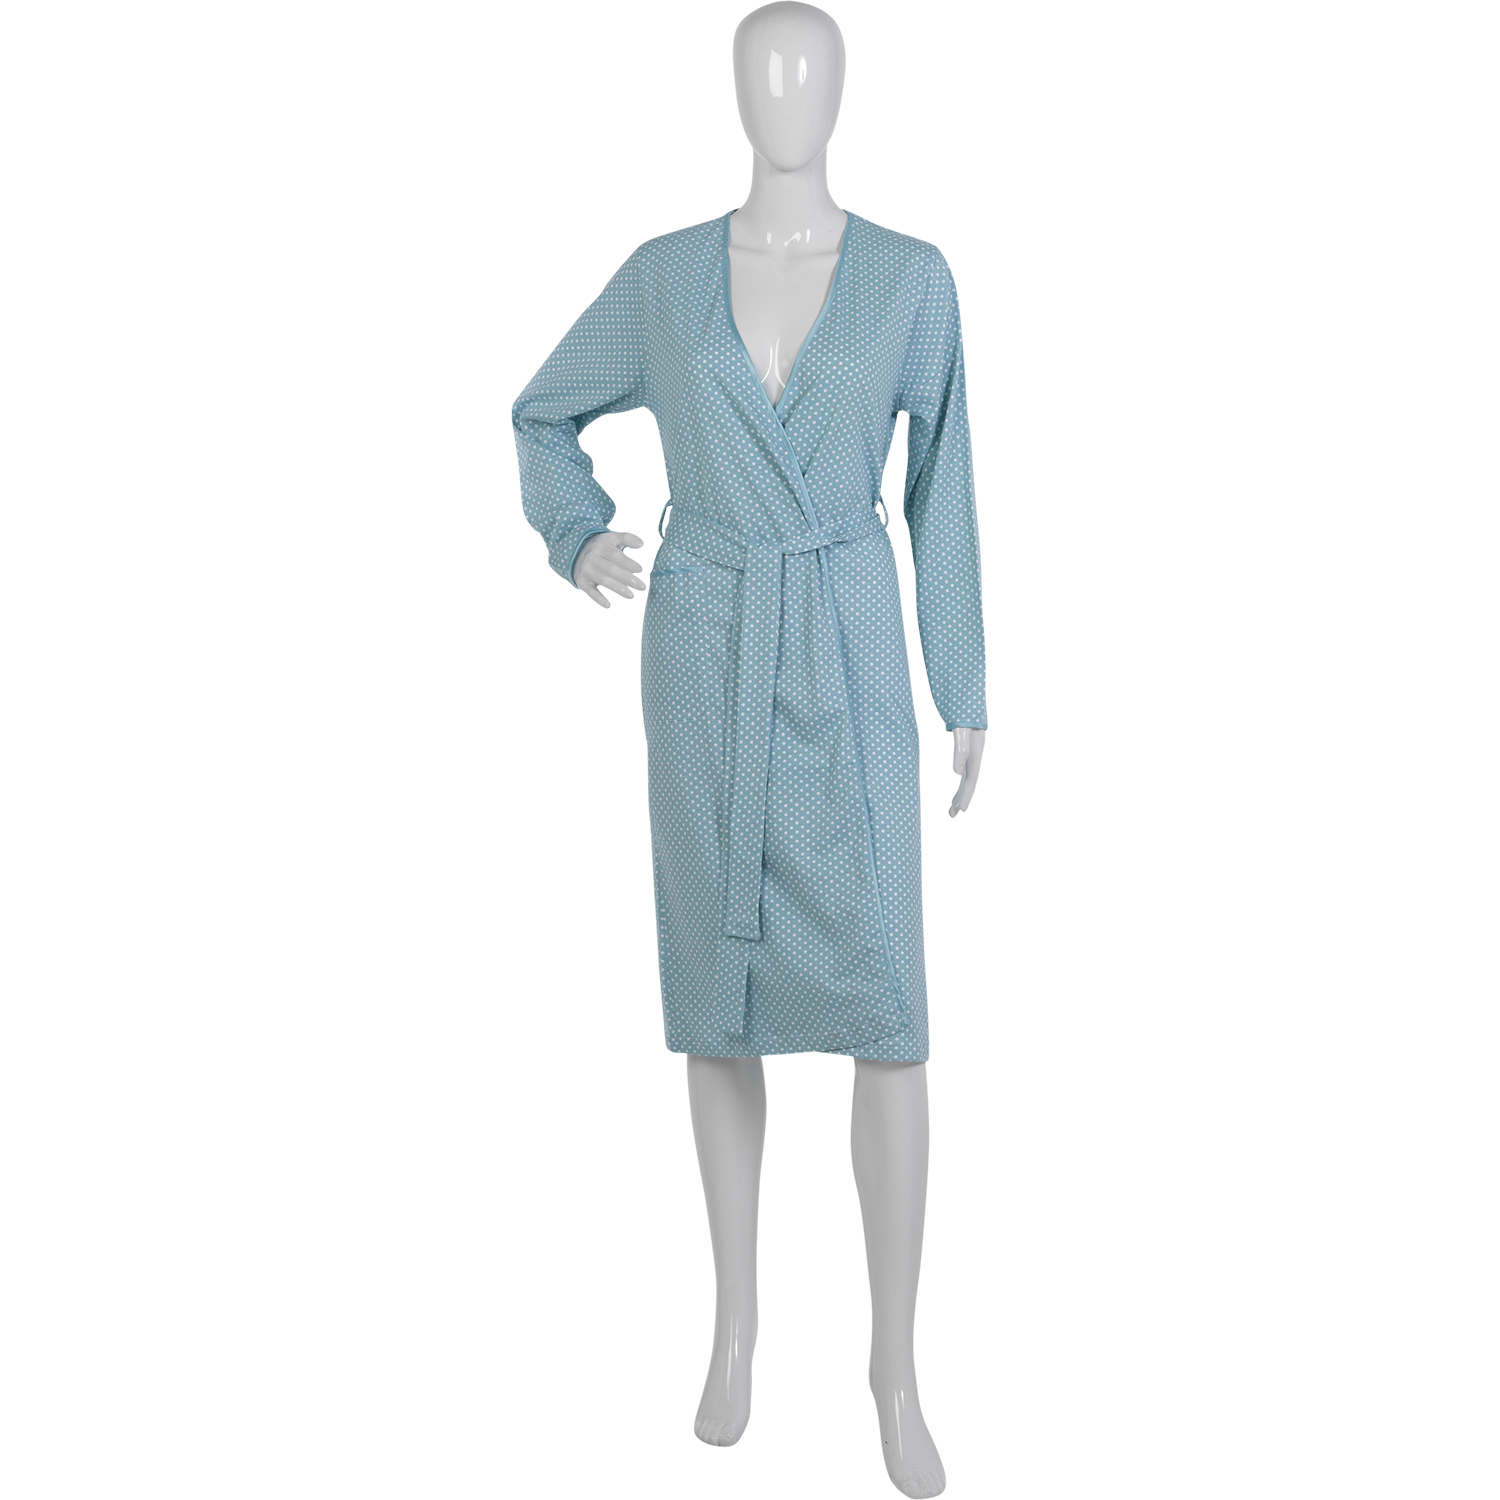 You'll find the widest range of Dressing gowns products online and delivered to your door. Shop today! Menu Light pink floral print satin 'Painted Posey' kimono dressing gown Save. White cotton towelling dressing gown Save. Was £ Now £ Sort by. View all products. 1 | 2 |.